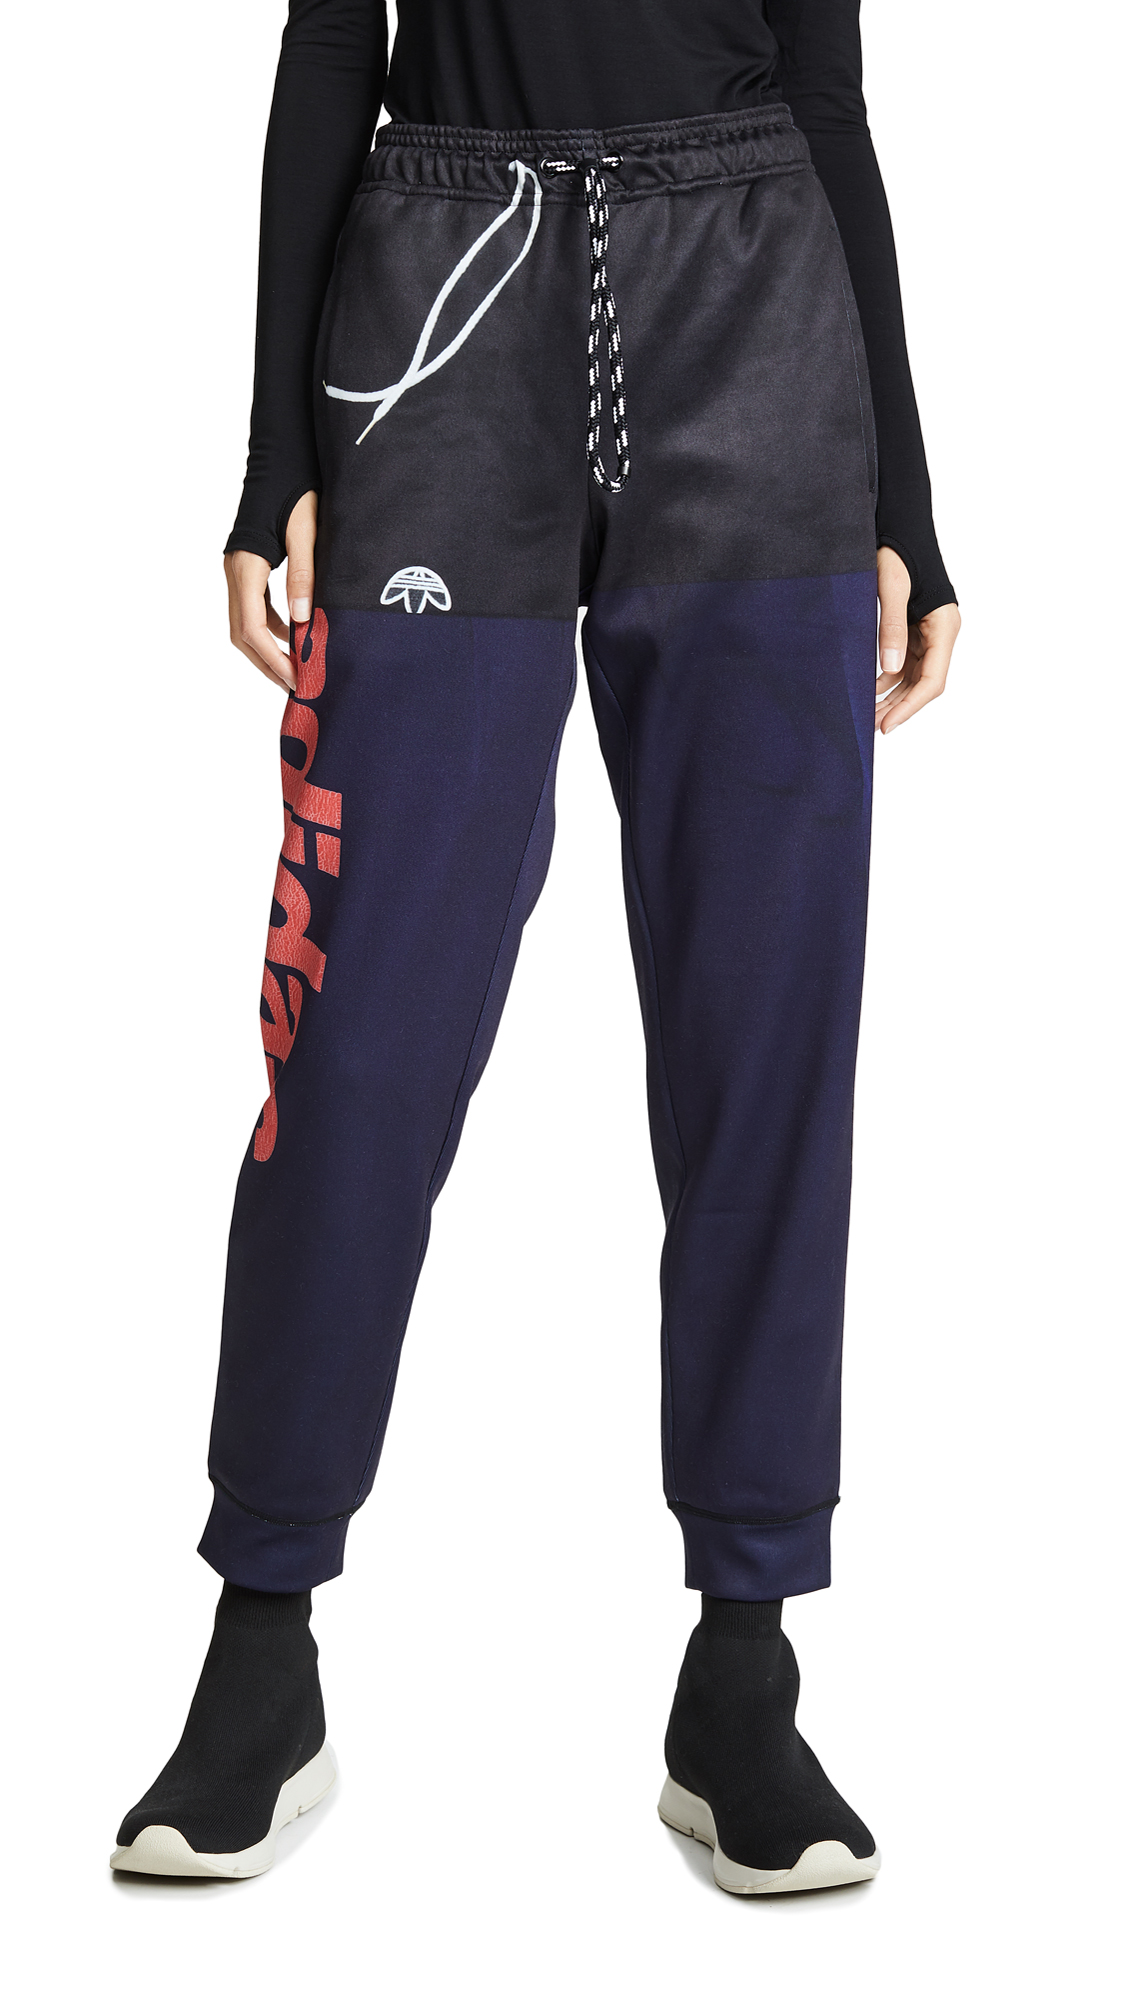 adidas Originals by Alexander Wang Photocopy Sweatpants - Legend Ink/Scarlet